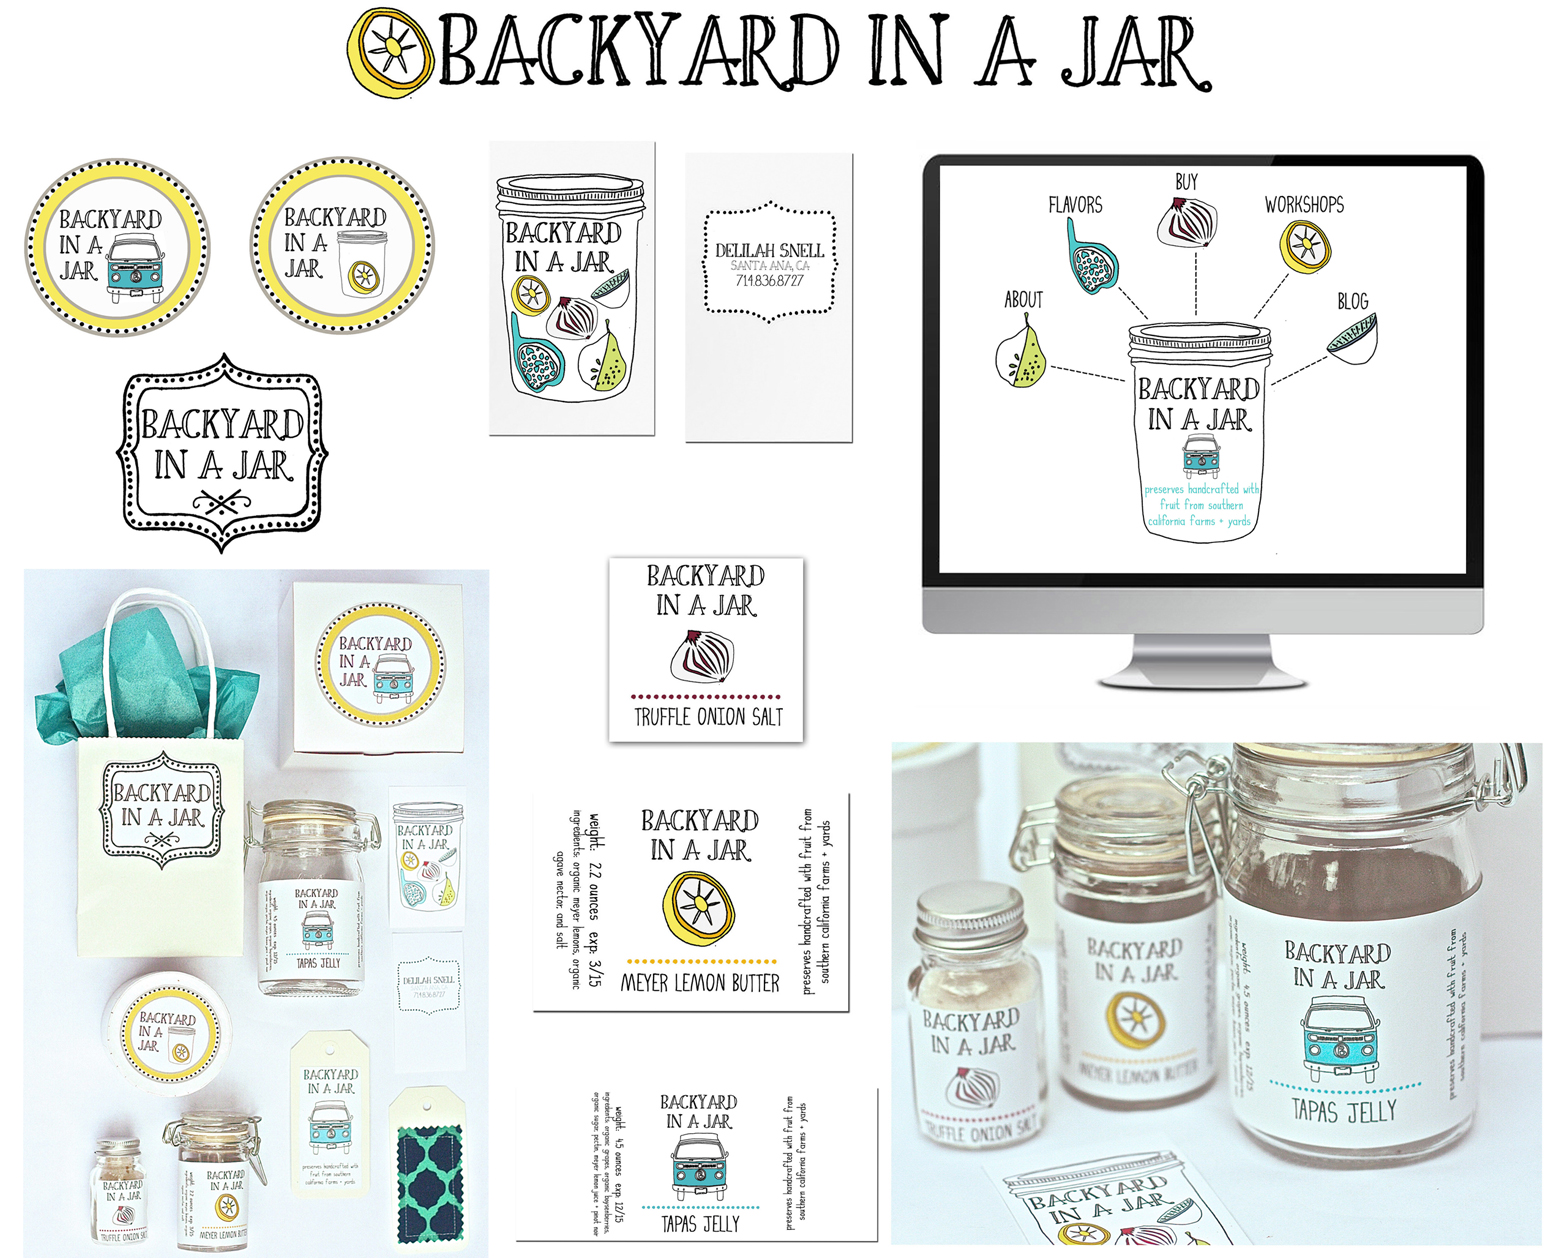 BACKYARD IN A JAR:  Preserves handcrafted from fruit gathered in Southern California backyards and farms  What I created:  Branding, identity, logo, web, packaging and hangtags.  Delilah Snell, the founder of Backyard in a Jar knows just about everyone in Orange County. Not only does she know them, but they invite her over to harvest their backyard offerings which often fell to ground before she hit the road in her 1970s Volkswagon bus to Southern California backyards for local produce to create her seasonal jams, preserves, jellies and more. It was essential to incorporate not just her love of seasonal harvesting but the integral part her VW bus plays in her business.